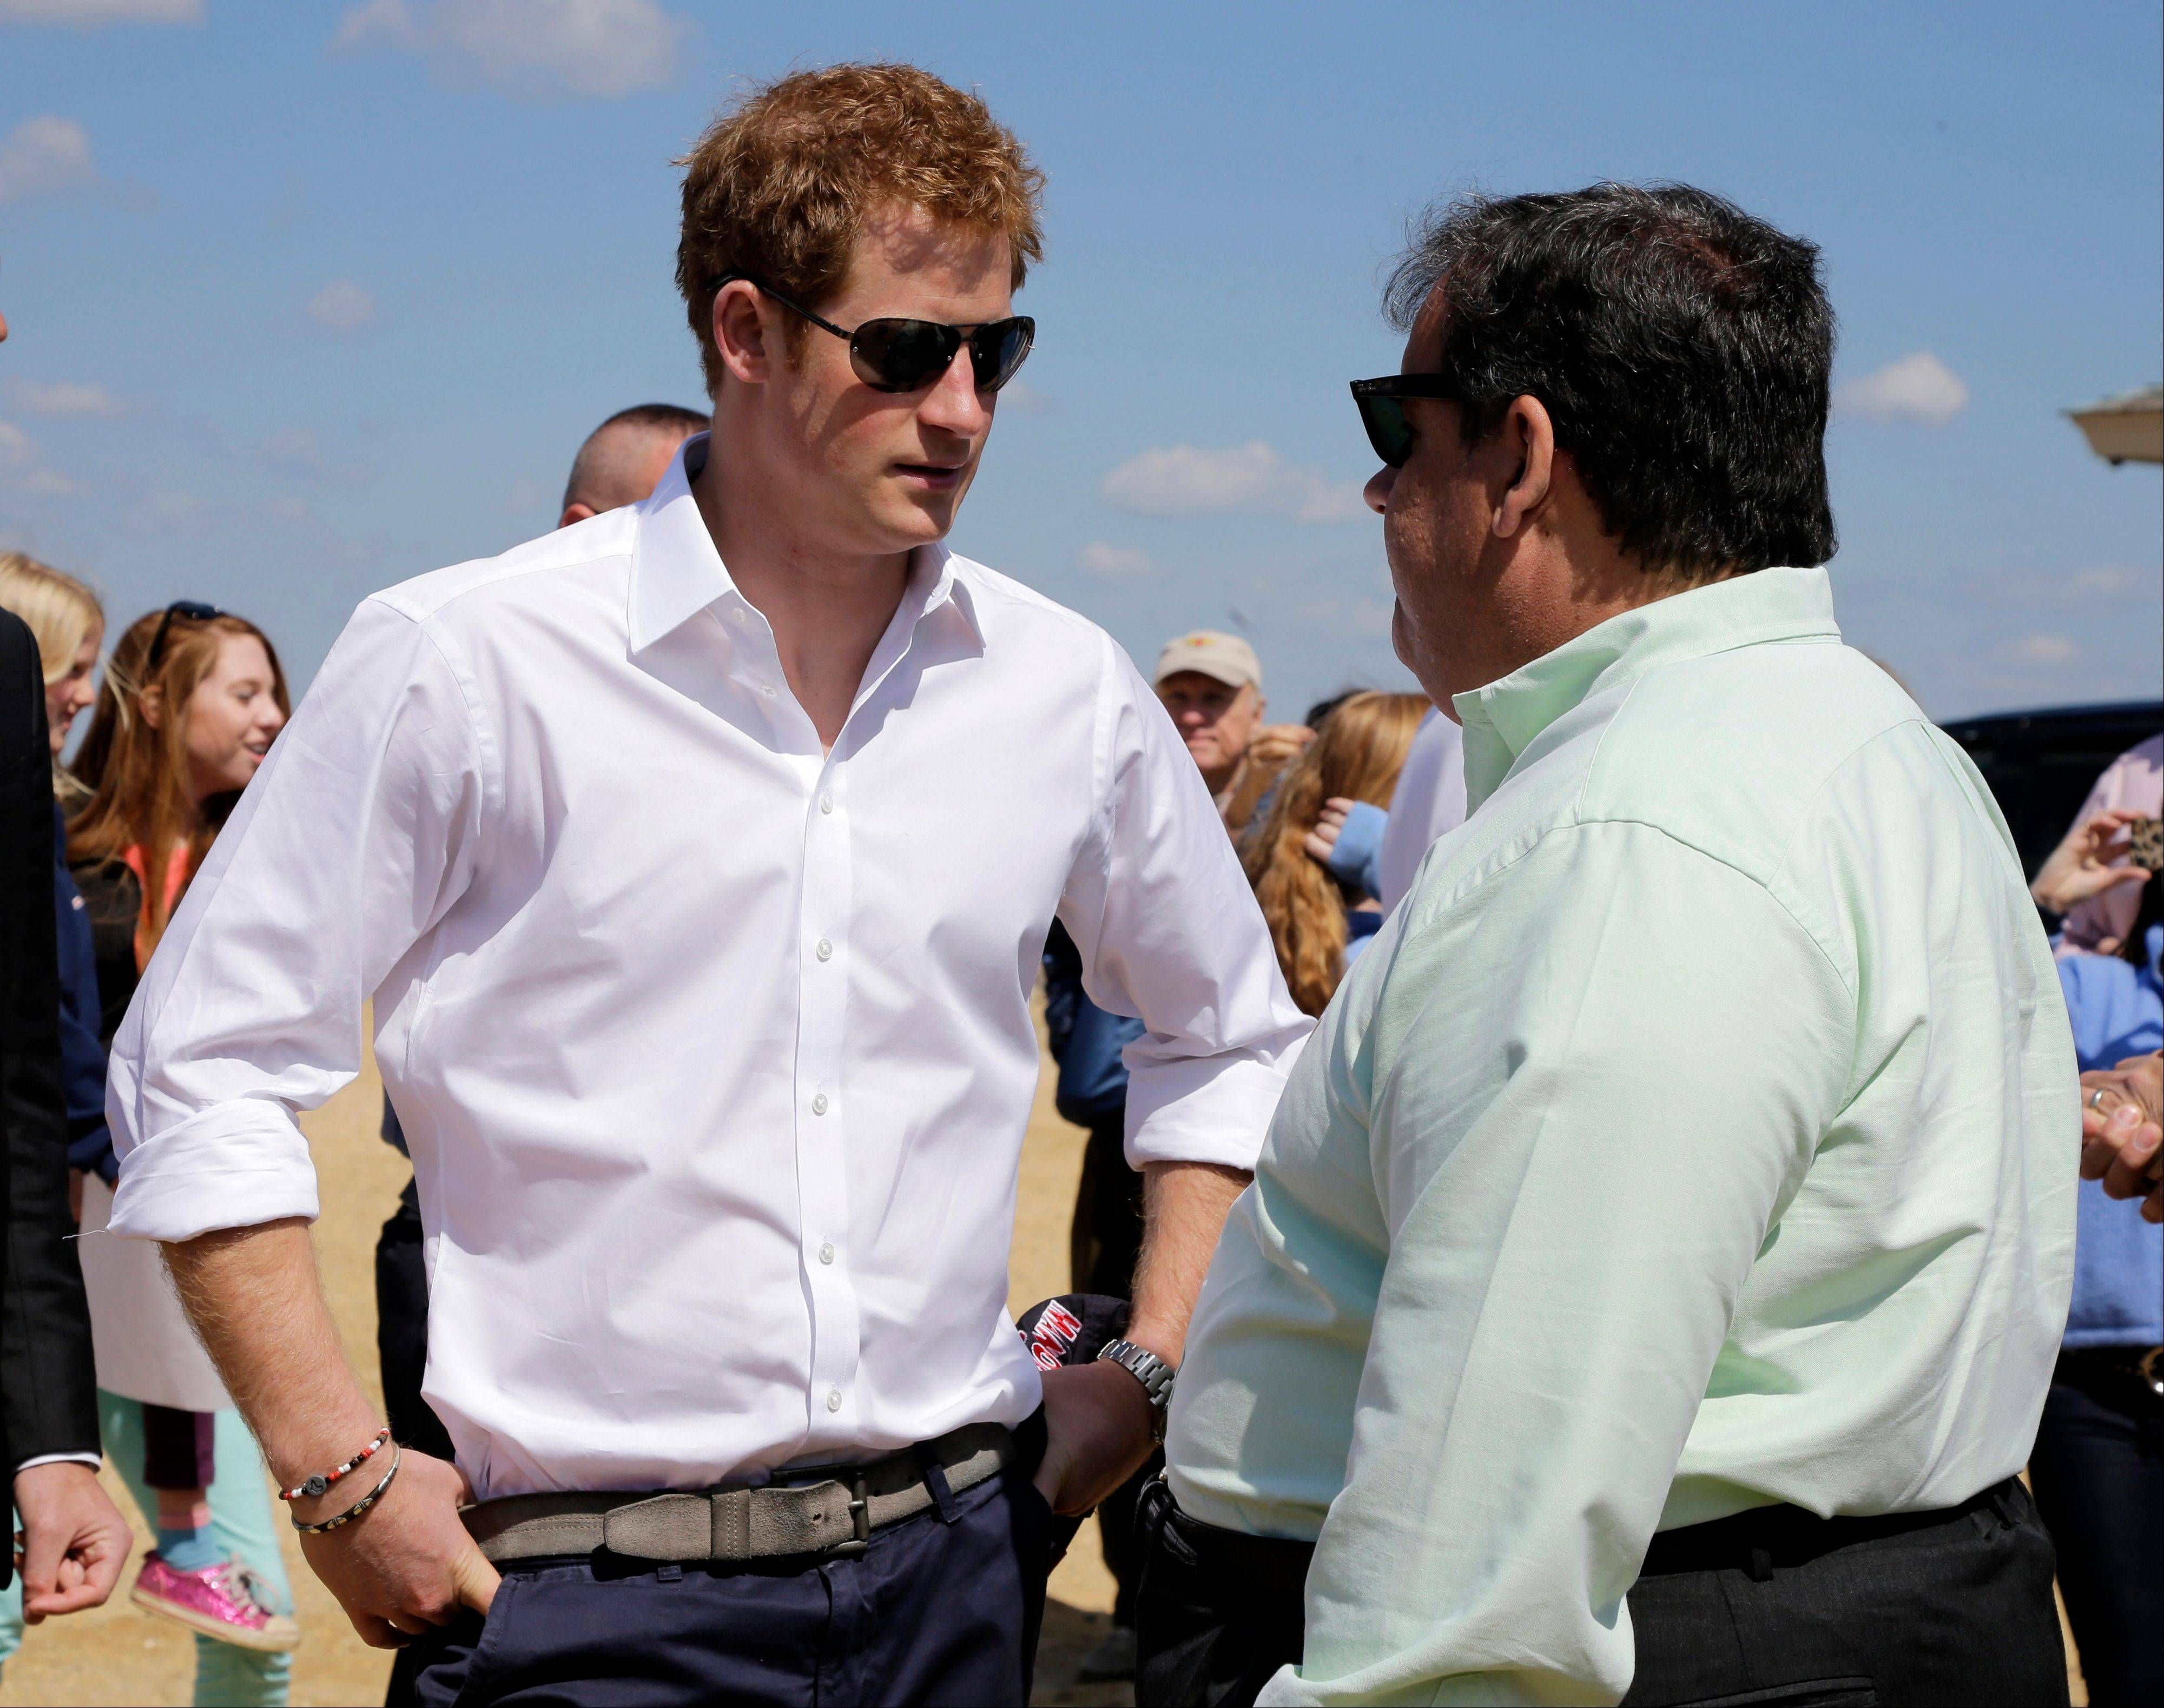 New Jersey Gov. Chris Christie talks to Britain's Prince Harry while visiting the area hit by Superstorm Sandy, Tuesday, May 14, 2013, in Seaside Heights, N.J. Prince Harry began a tour of New Jersey's storm-damaged coastline, inspecting dune construction, walking past destroyed homes and shaking hands with police and other emergency workers. New Jersey sustained about $37 billion worth of damage from the storm.